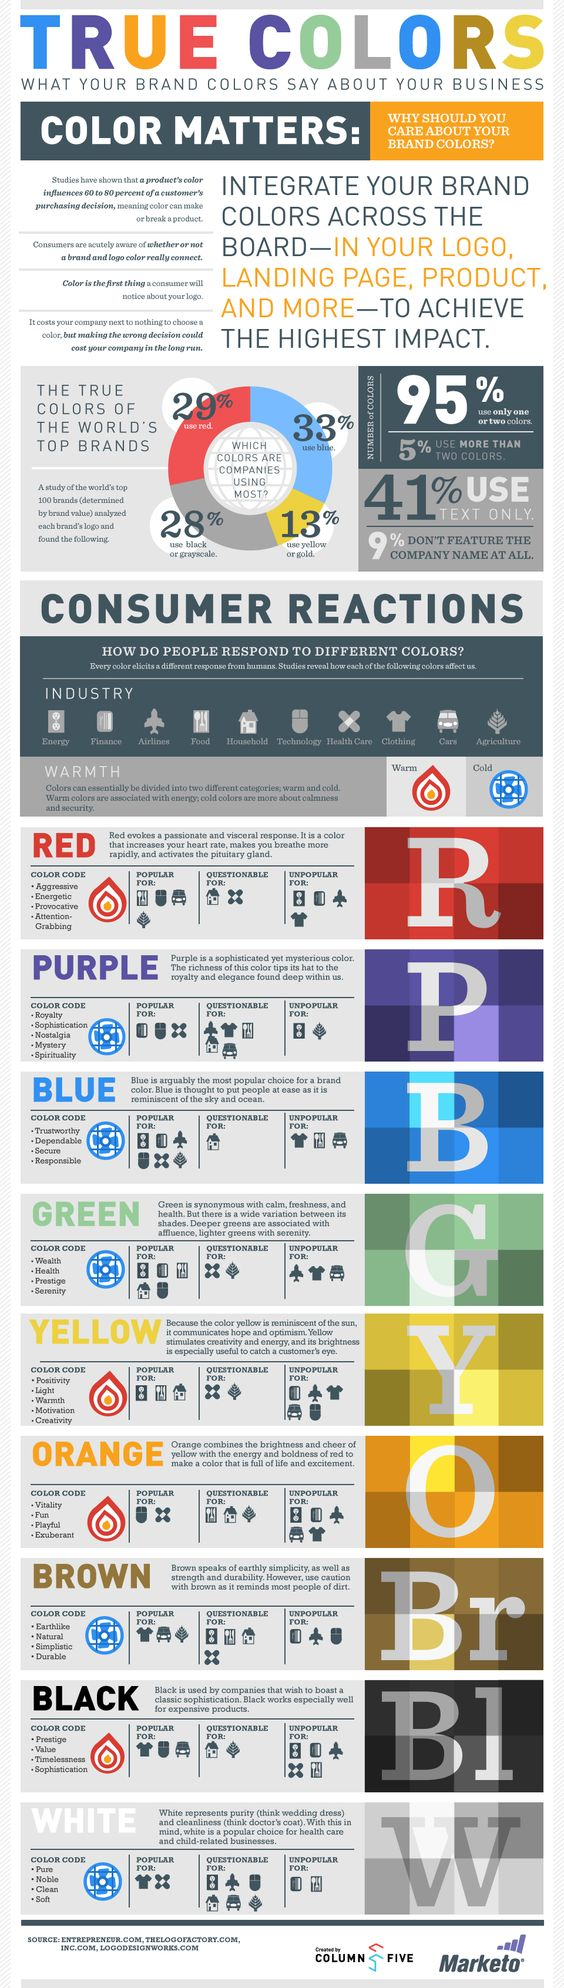 What your brand colours say about your business (Marketo, 2012)